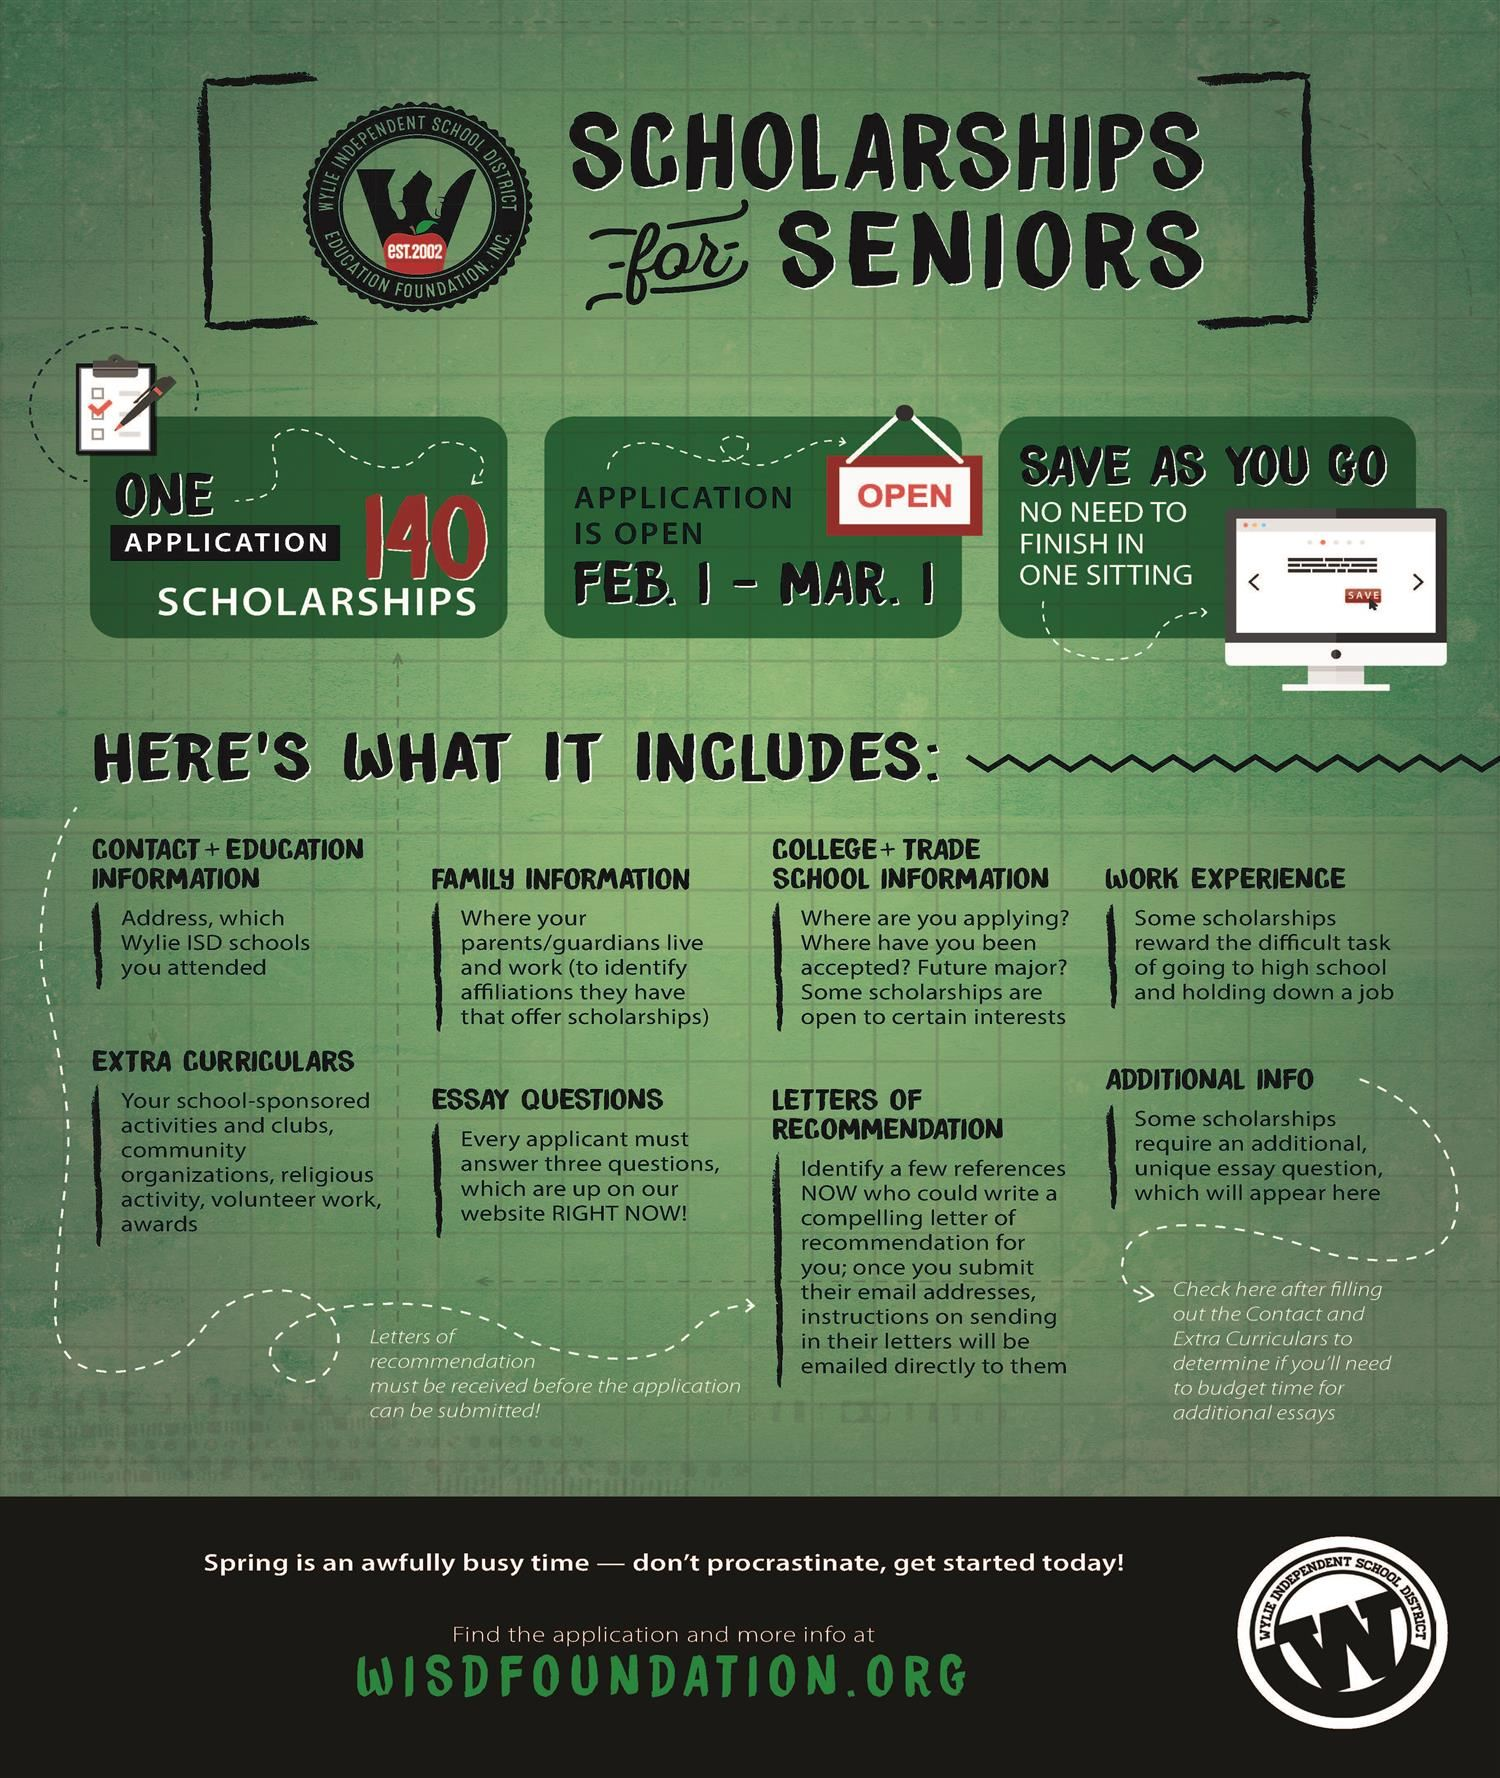 Scholarships for Seniors, one application 140 opportunities